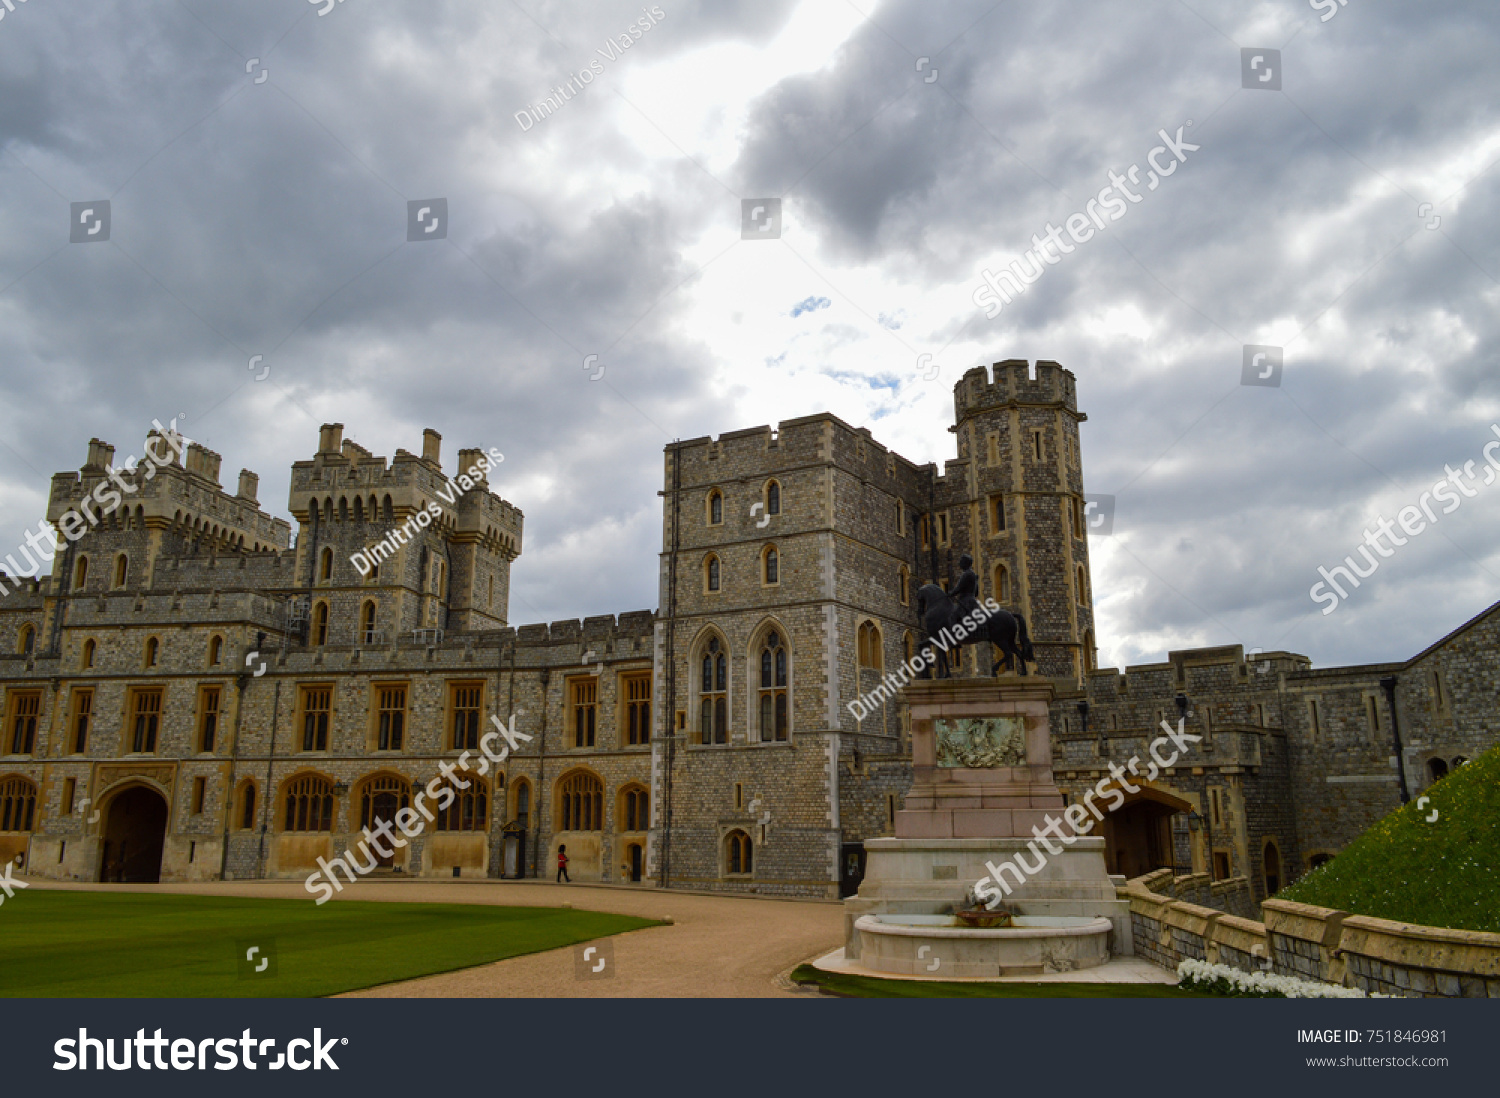 11th Century English Home - stock-photo-windsor-berkshire-england-uk-april-windsor-castle-is-a-royal-residence-at-windsor-in-751846981_Wonderful 11th Century English Home - stock-photo-windsor-berkshire-england-uk-april-windsor-castle-is-a-royal-residence-at-windsor-in-751846981  HD_76569.jpg